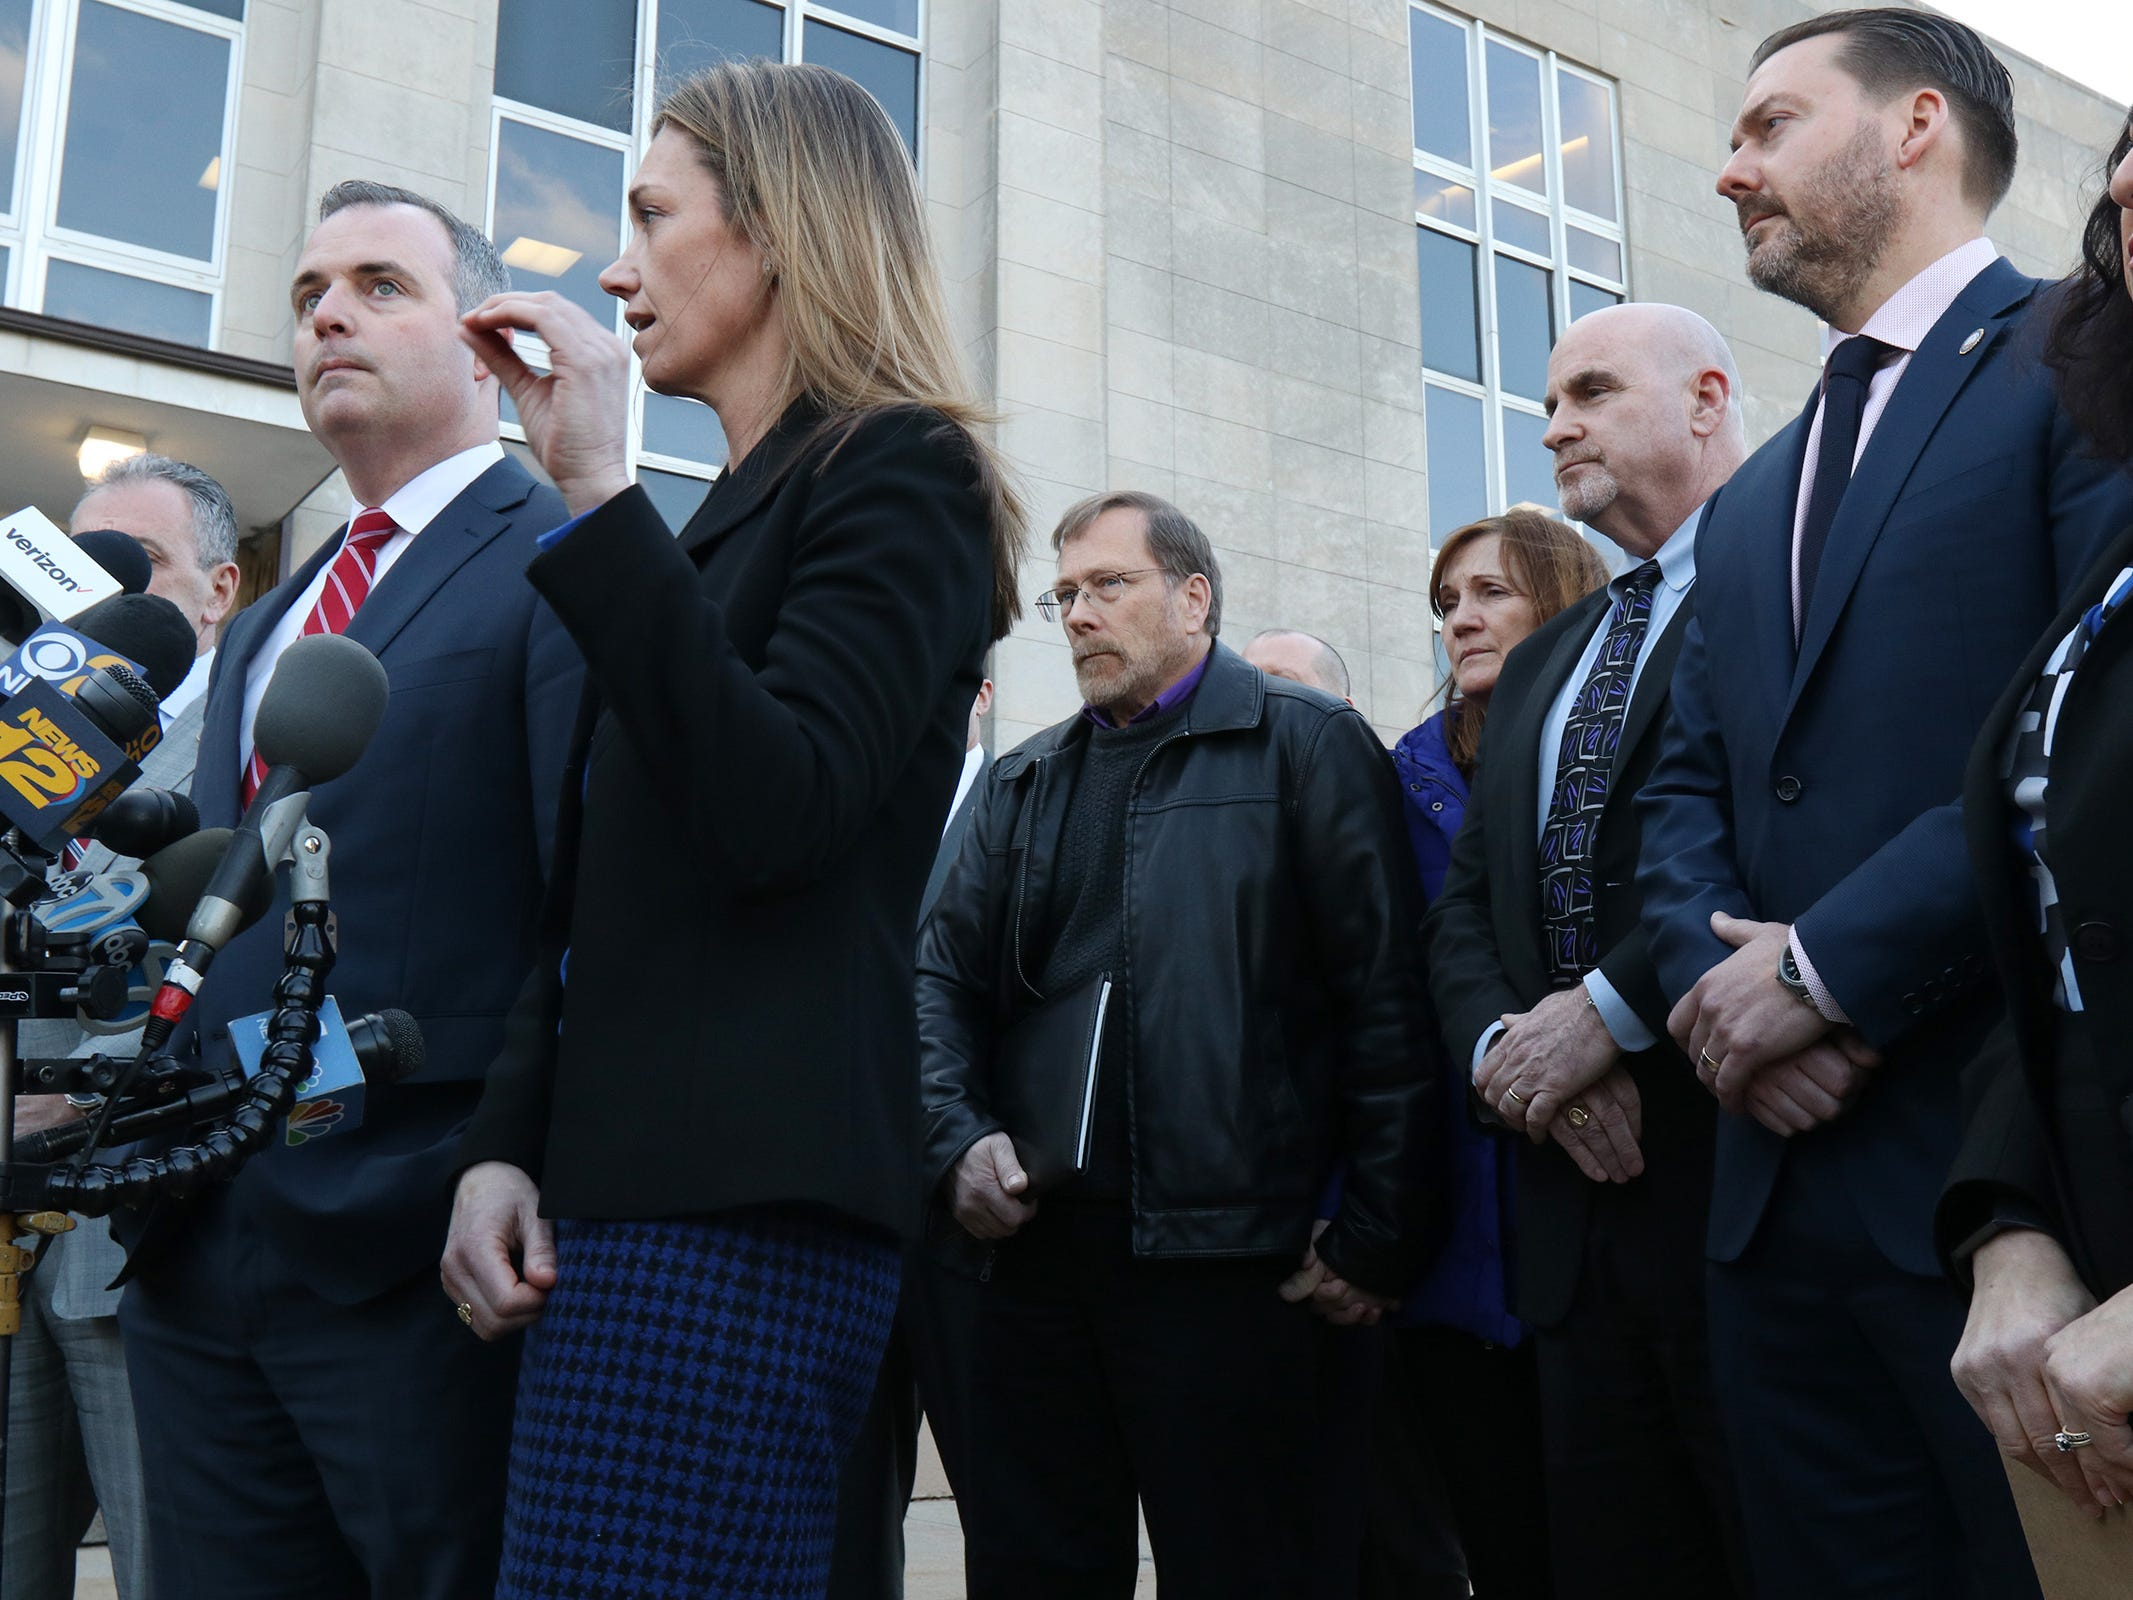 (center) Michael Stern, father of Sarah Stern, holds the hand of his girlfriend, Kristine Eckert, as Christopher Decker and Meghan Doyle, both assistant Monmouth County prosecutors, speak during a press conference after the the jury found Liam McAtasney guilty on all charges in the murder of former high school classmate, Sarah Stern, at the Monmouth County Courthouse in Freehold, NJ Tuesday, February 26, 2019.